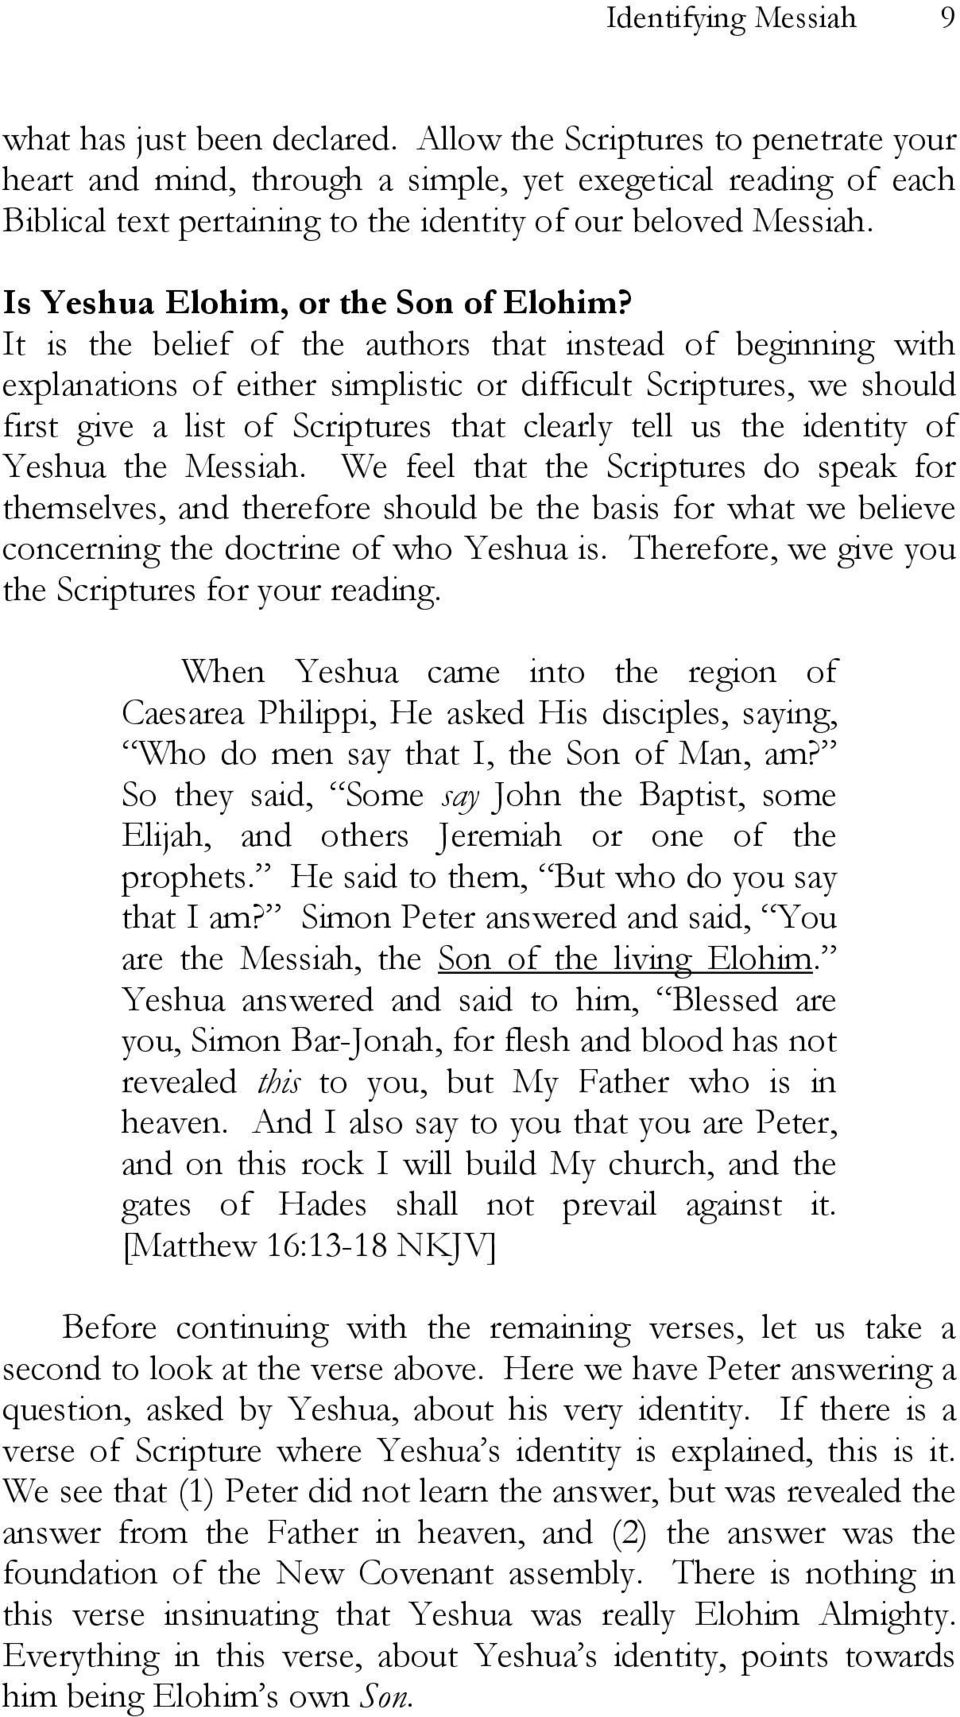 Is Yeshua Elohim, or the Son of Elohim?